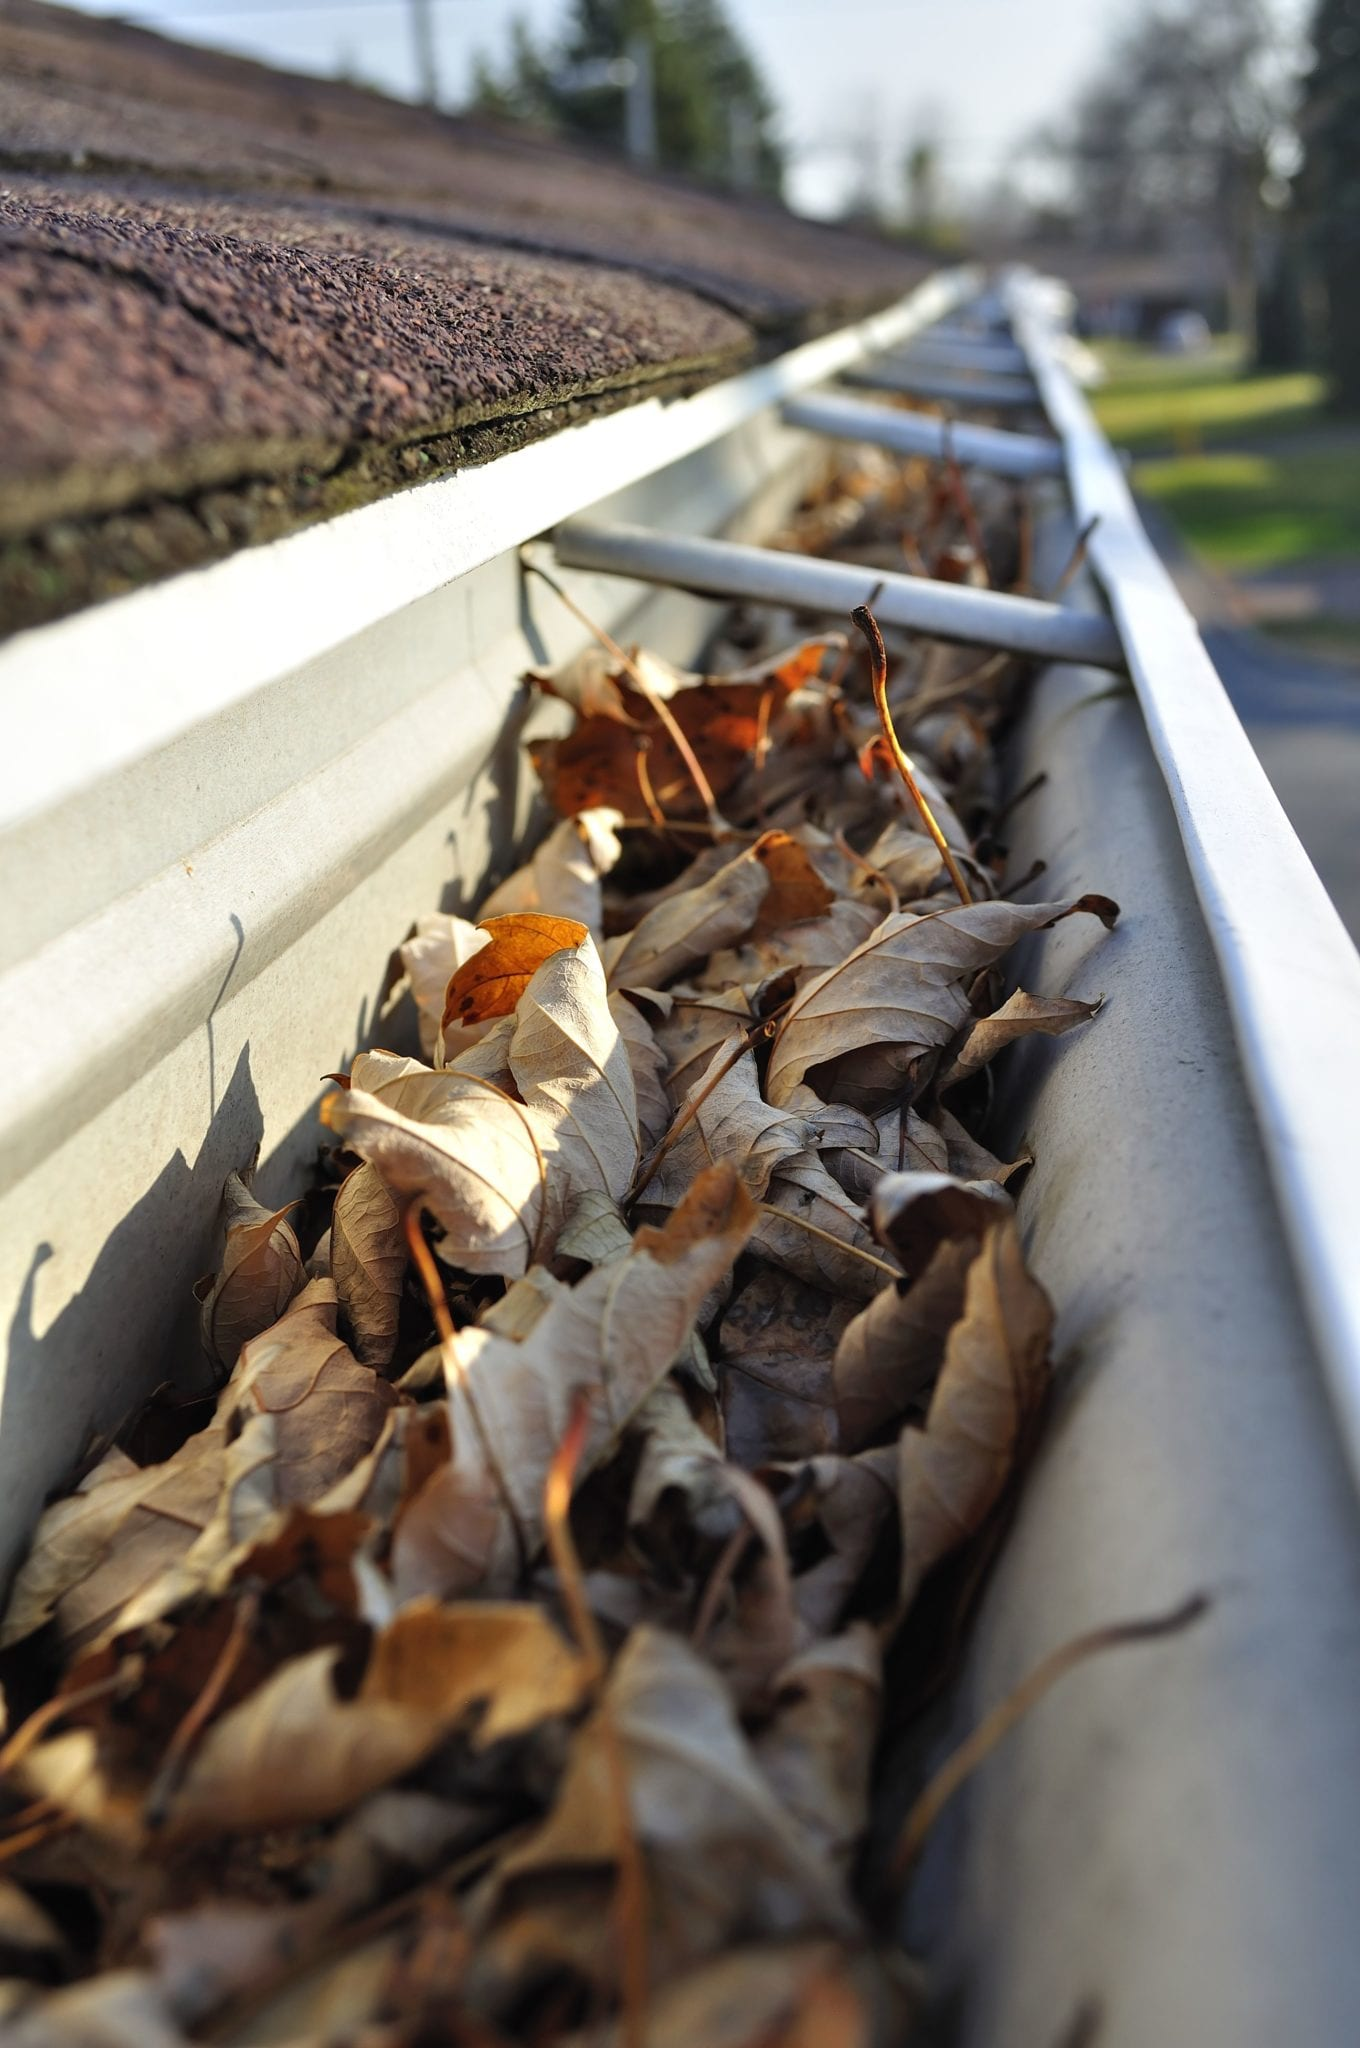 Gutter cleaning required